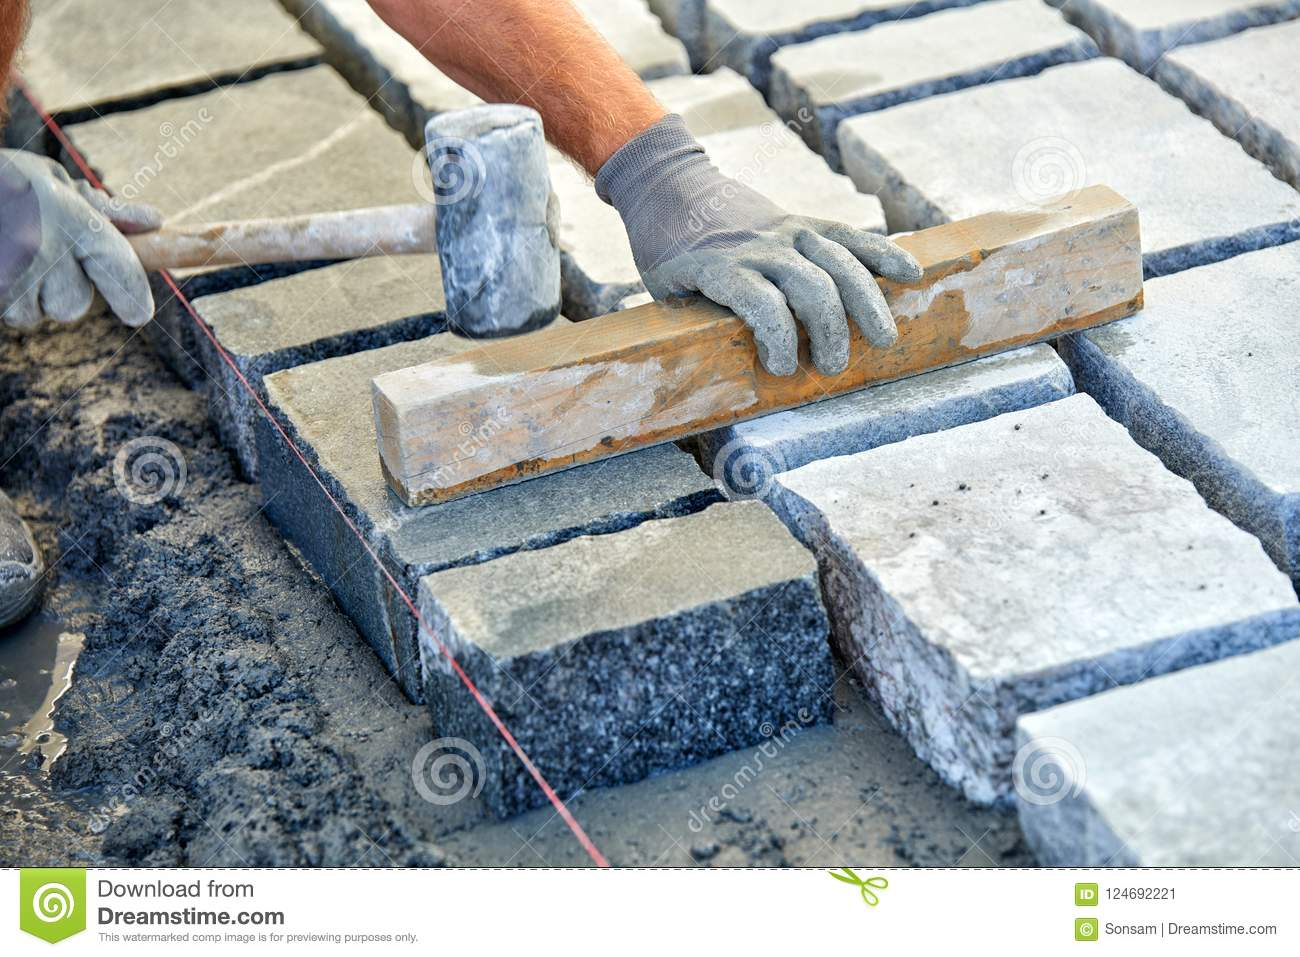 A Workman`s Gloved Hands Use A Hammer To Place Stone Pavers